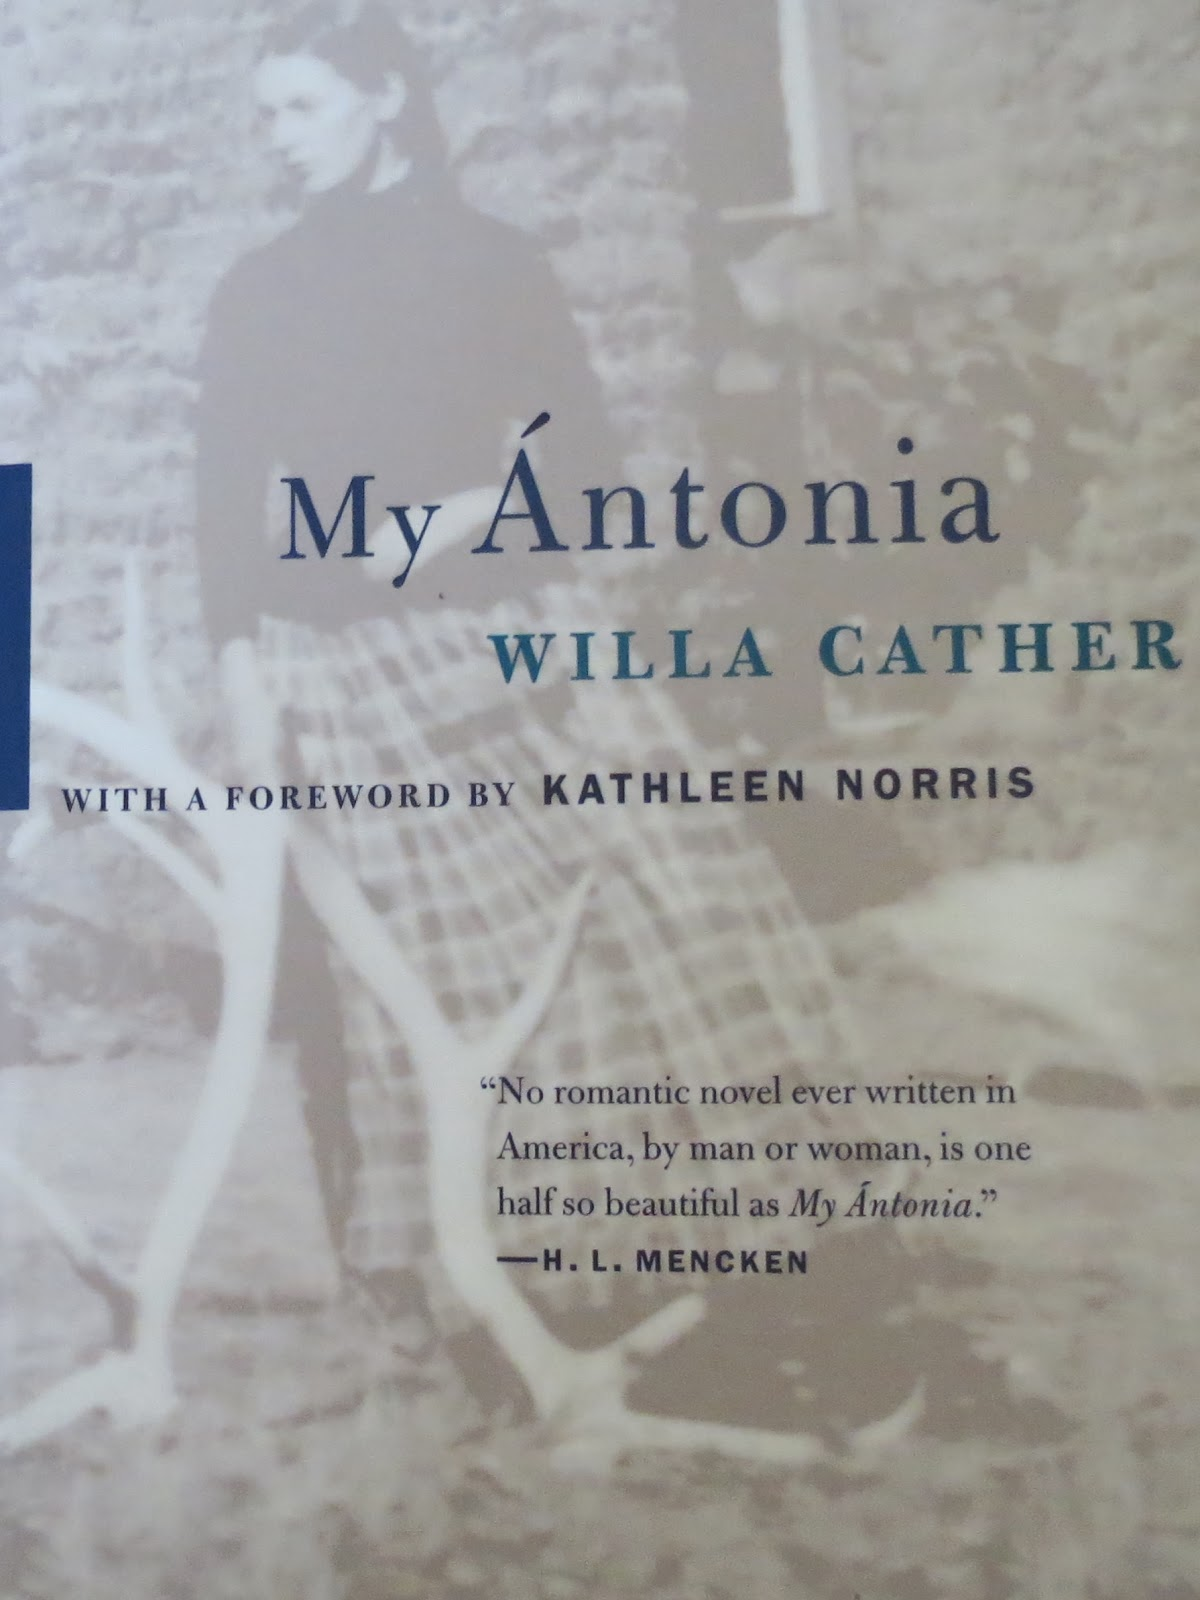 my antonia My antonia by willa cather, a free text and ebook for easy online reading, study, and reference my antonia tells the story of several immigrant families who move to rural nebraska antonia is the eldest daughter of the shimerdas and is a bold and free-hearted young.